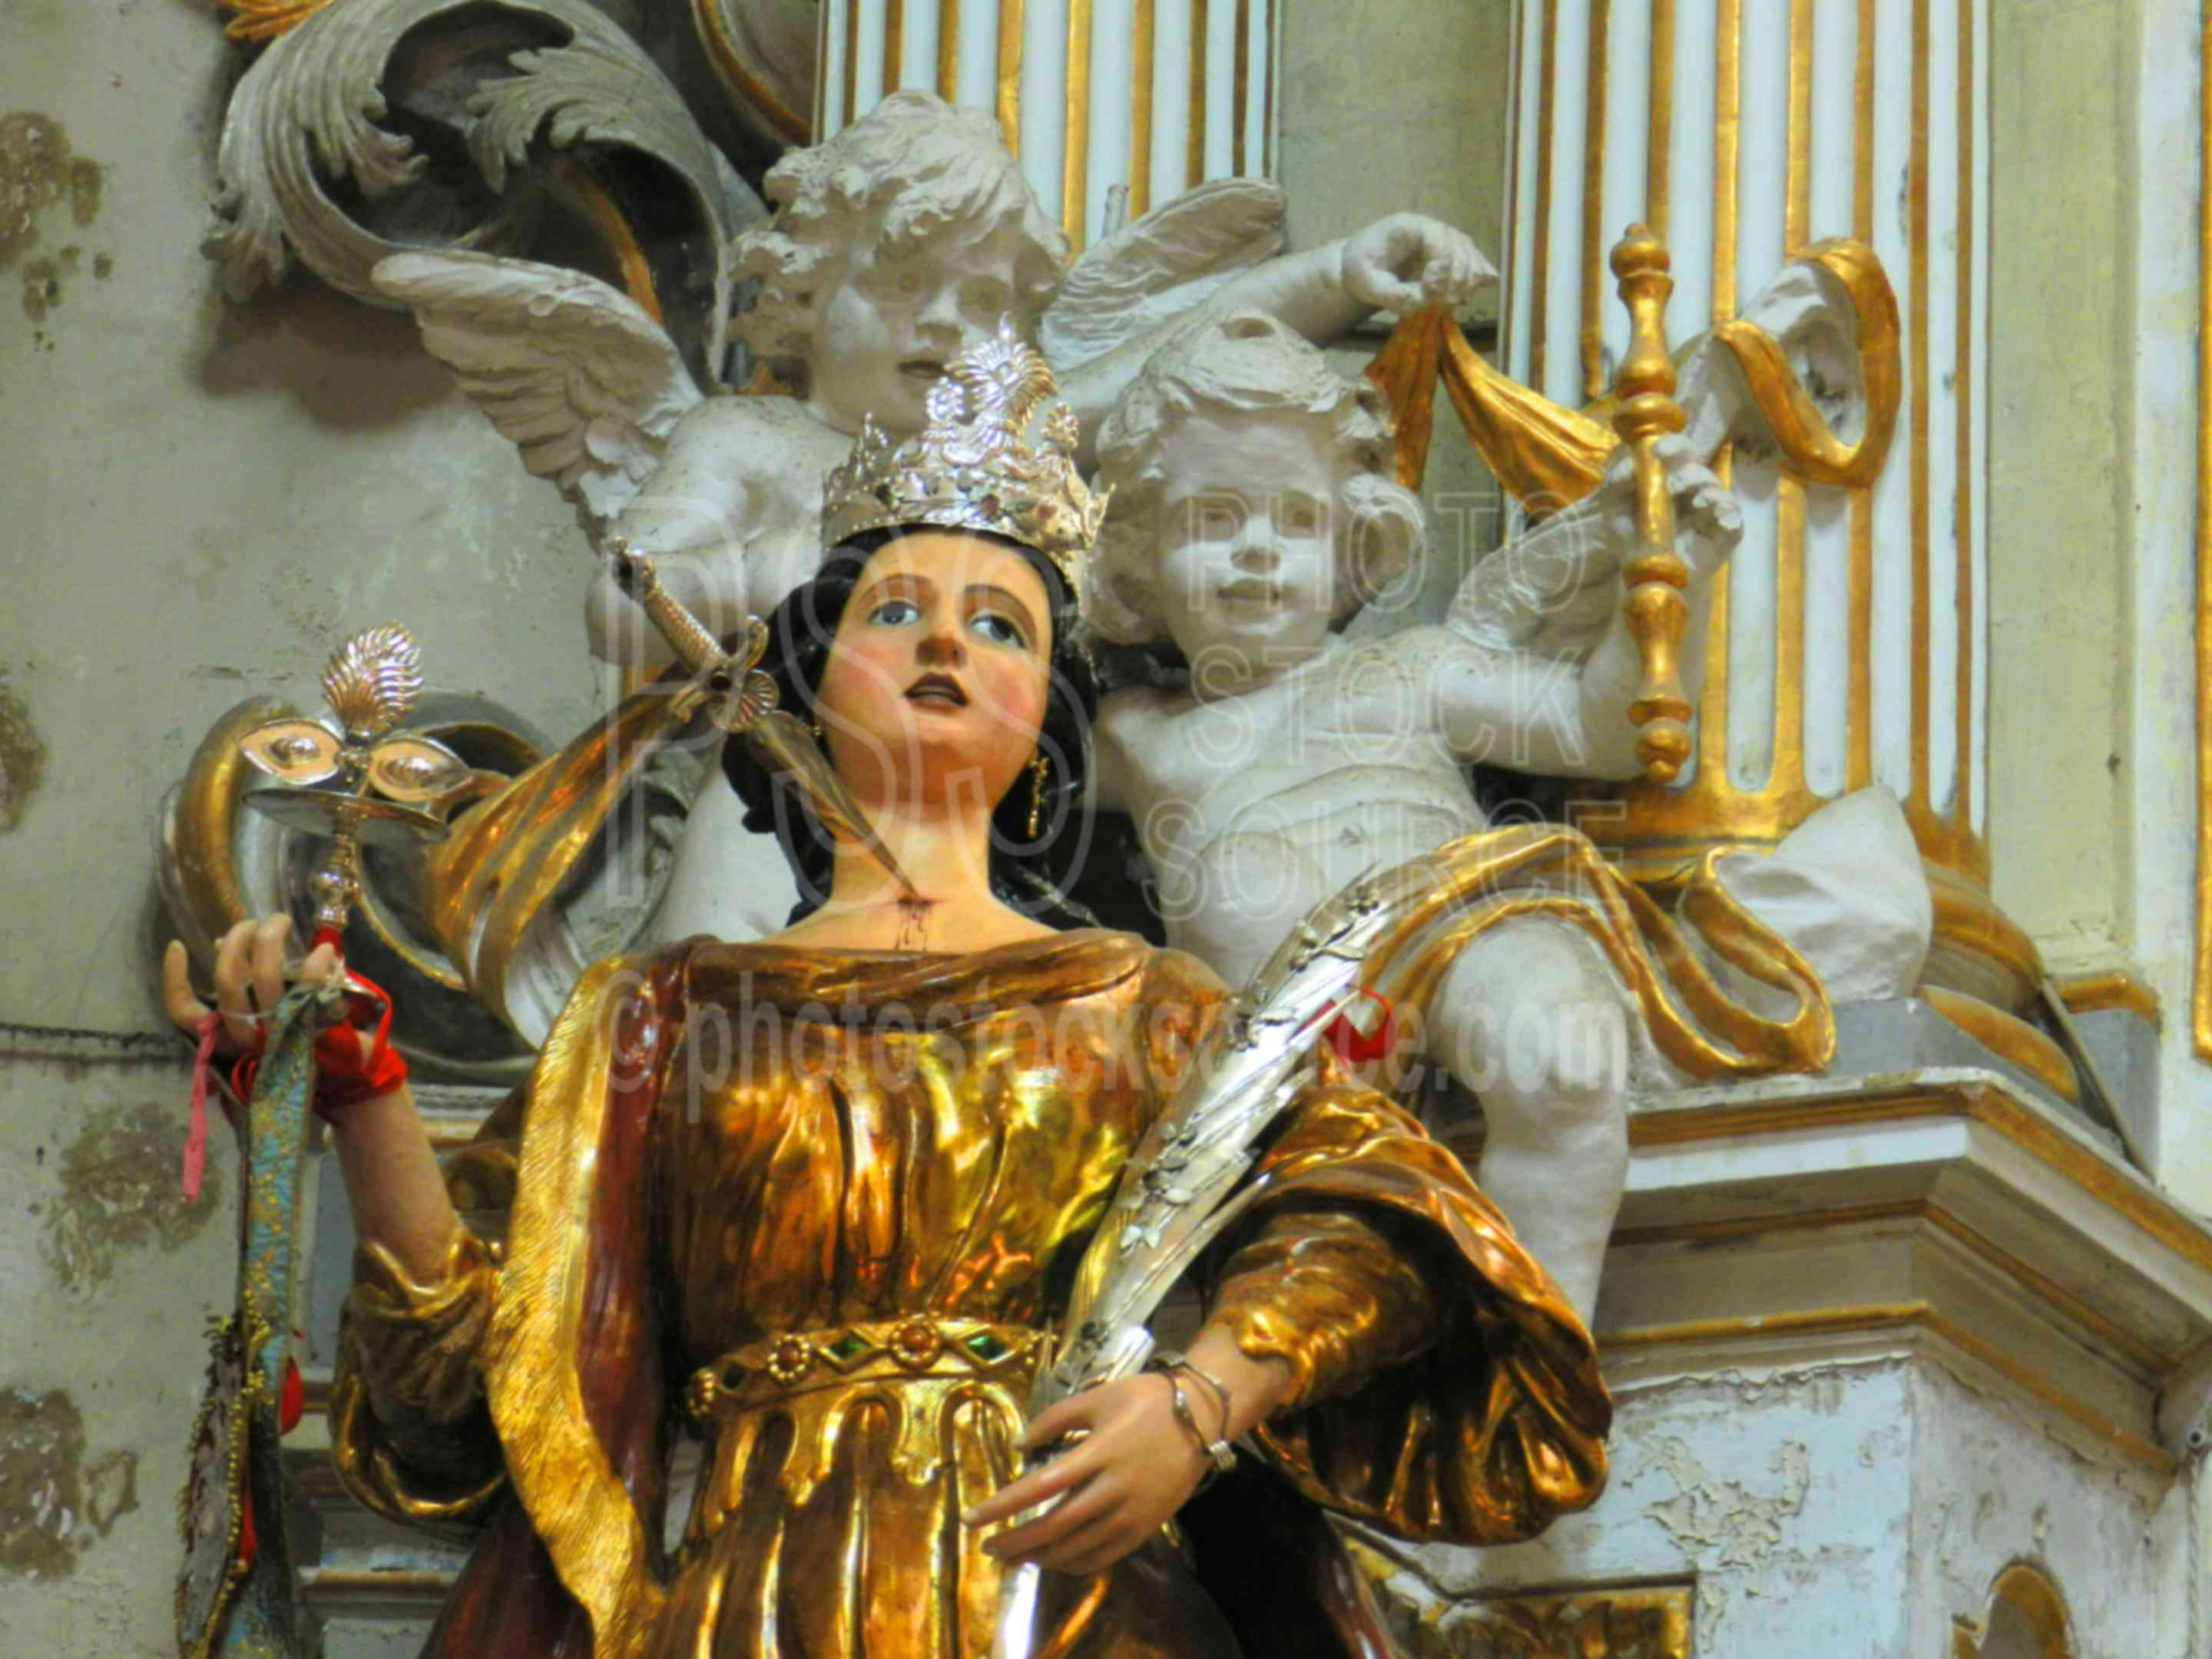 Statue of Santa Lucia,modica,church,baroque,cathedral,interior,statue,santa lucia,saint lucy